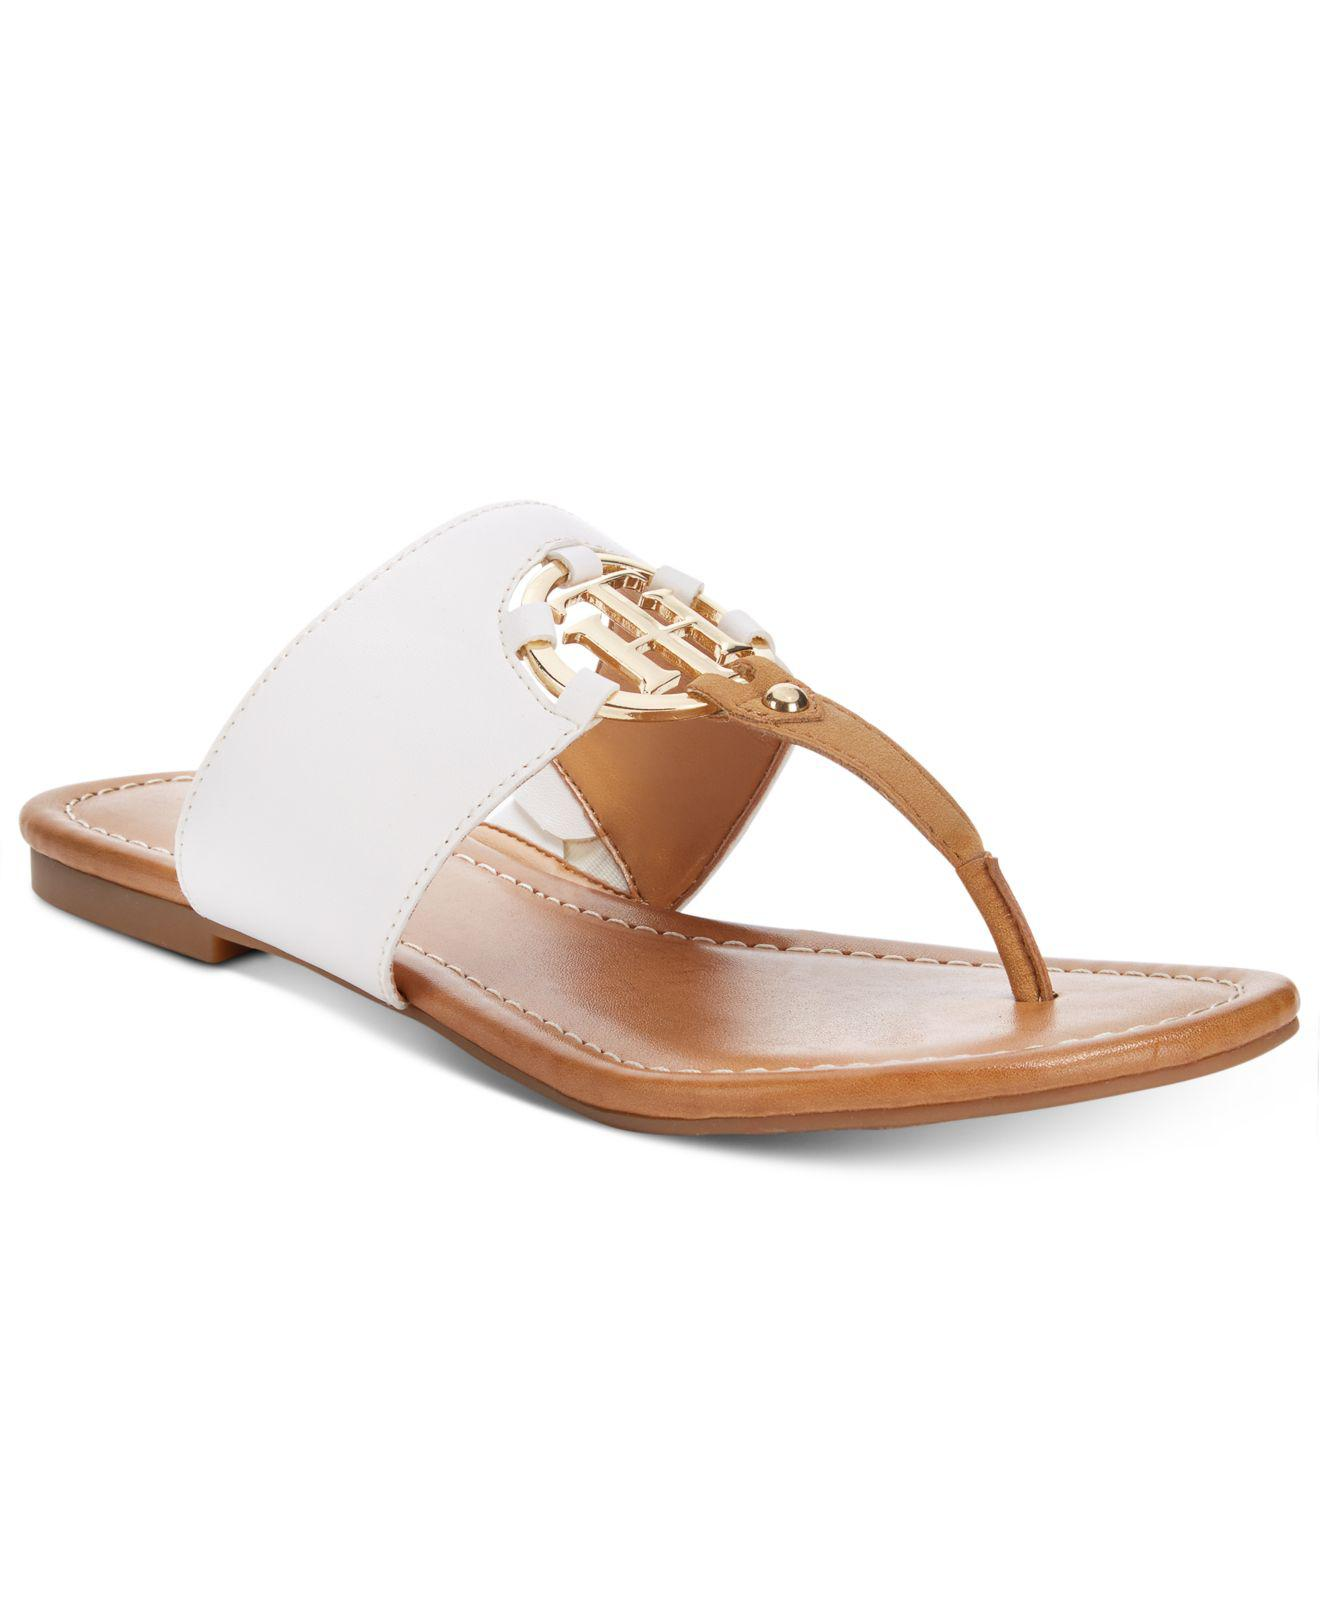 f4e0c60cd91 Lyst - Tommy Hilfiger Sia Slip-on Thong Sandals in White